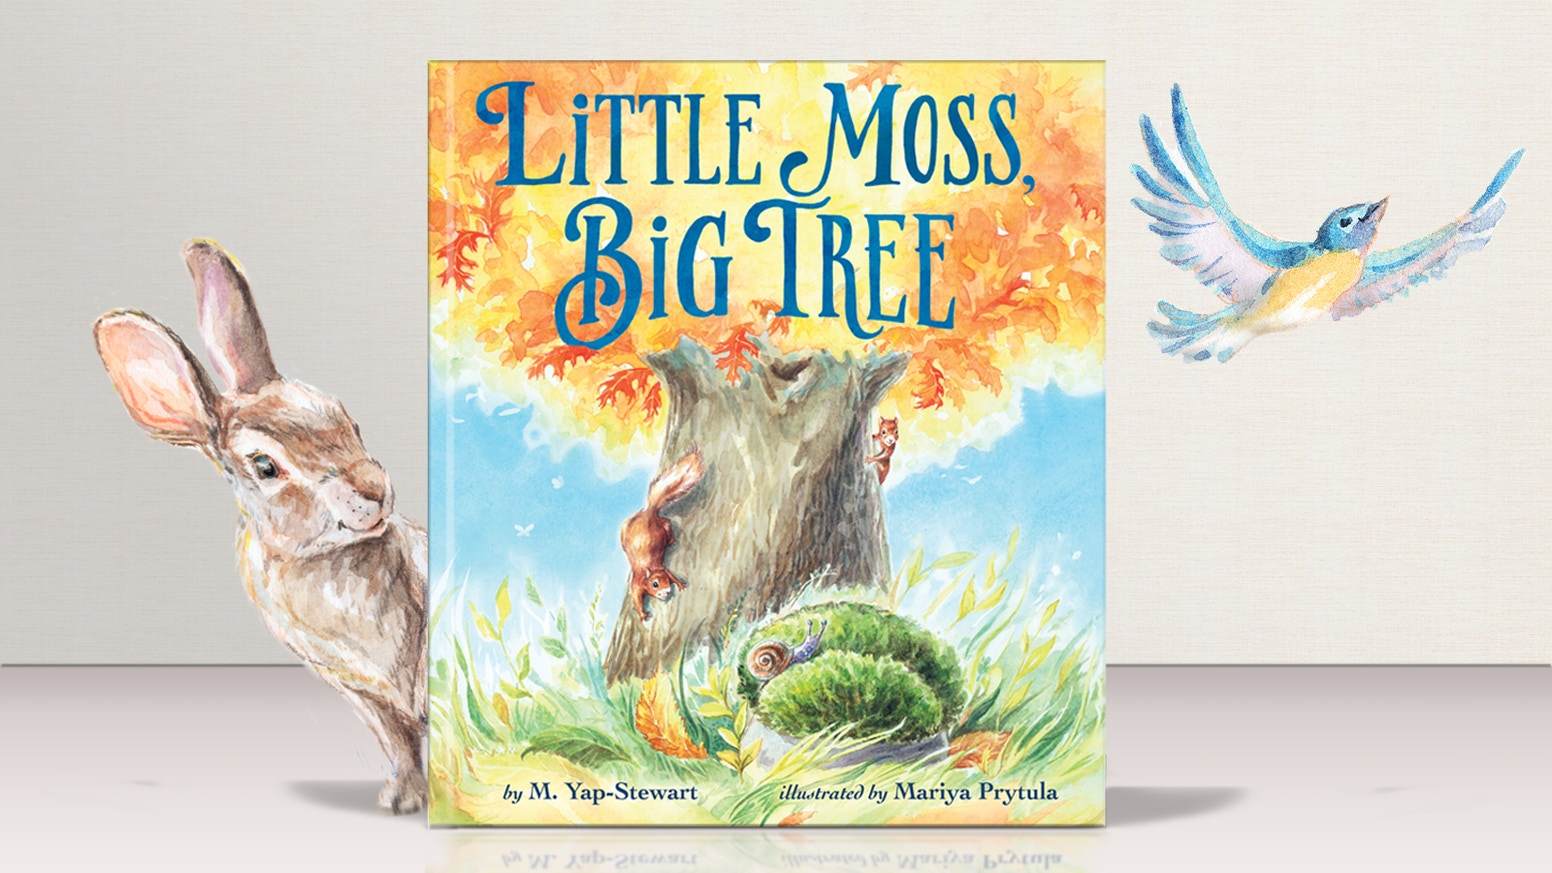 Classically-bound picture book, hand-painted in vintage-style watercolor, celebrating the magic of the natural world and friendship.